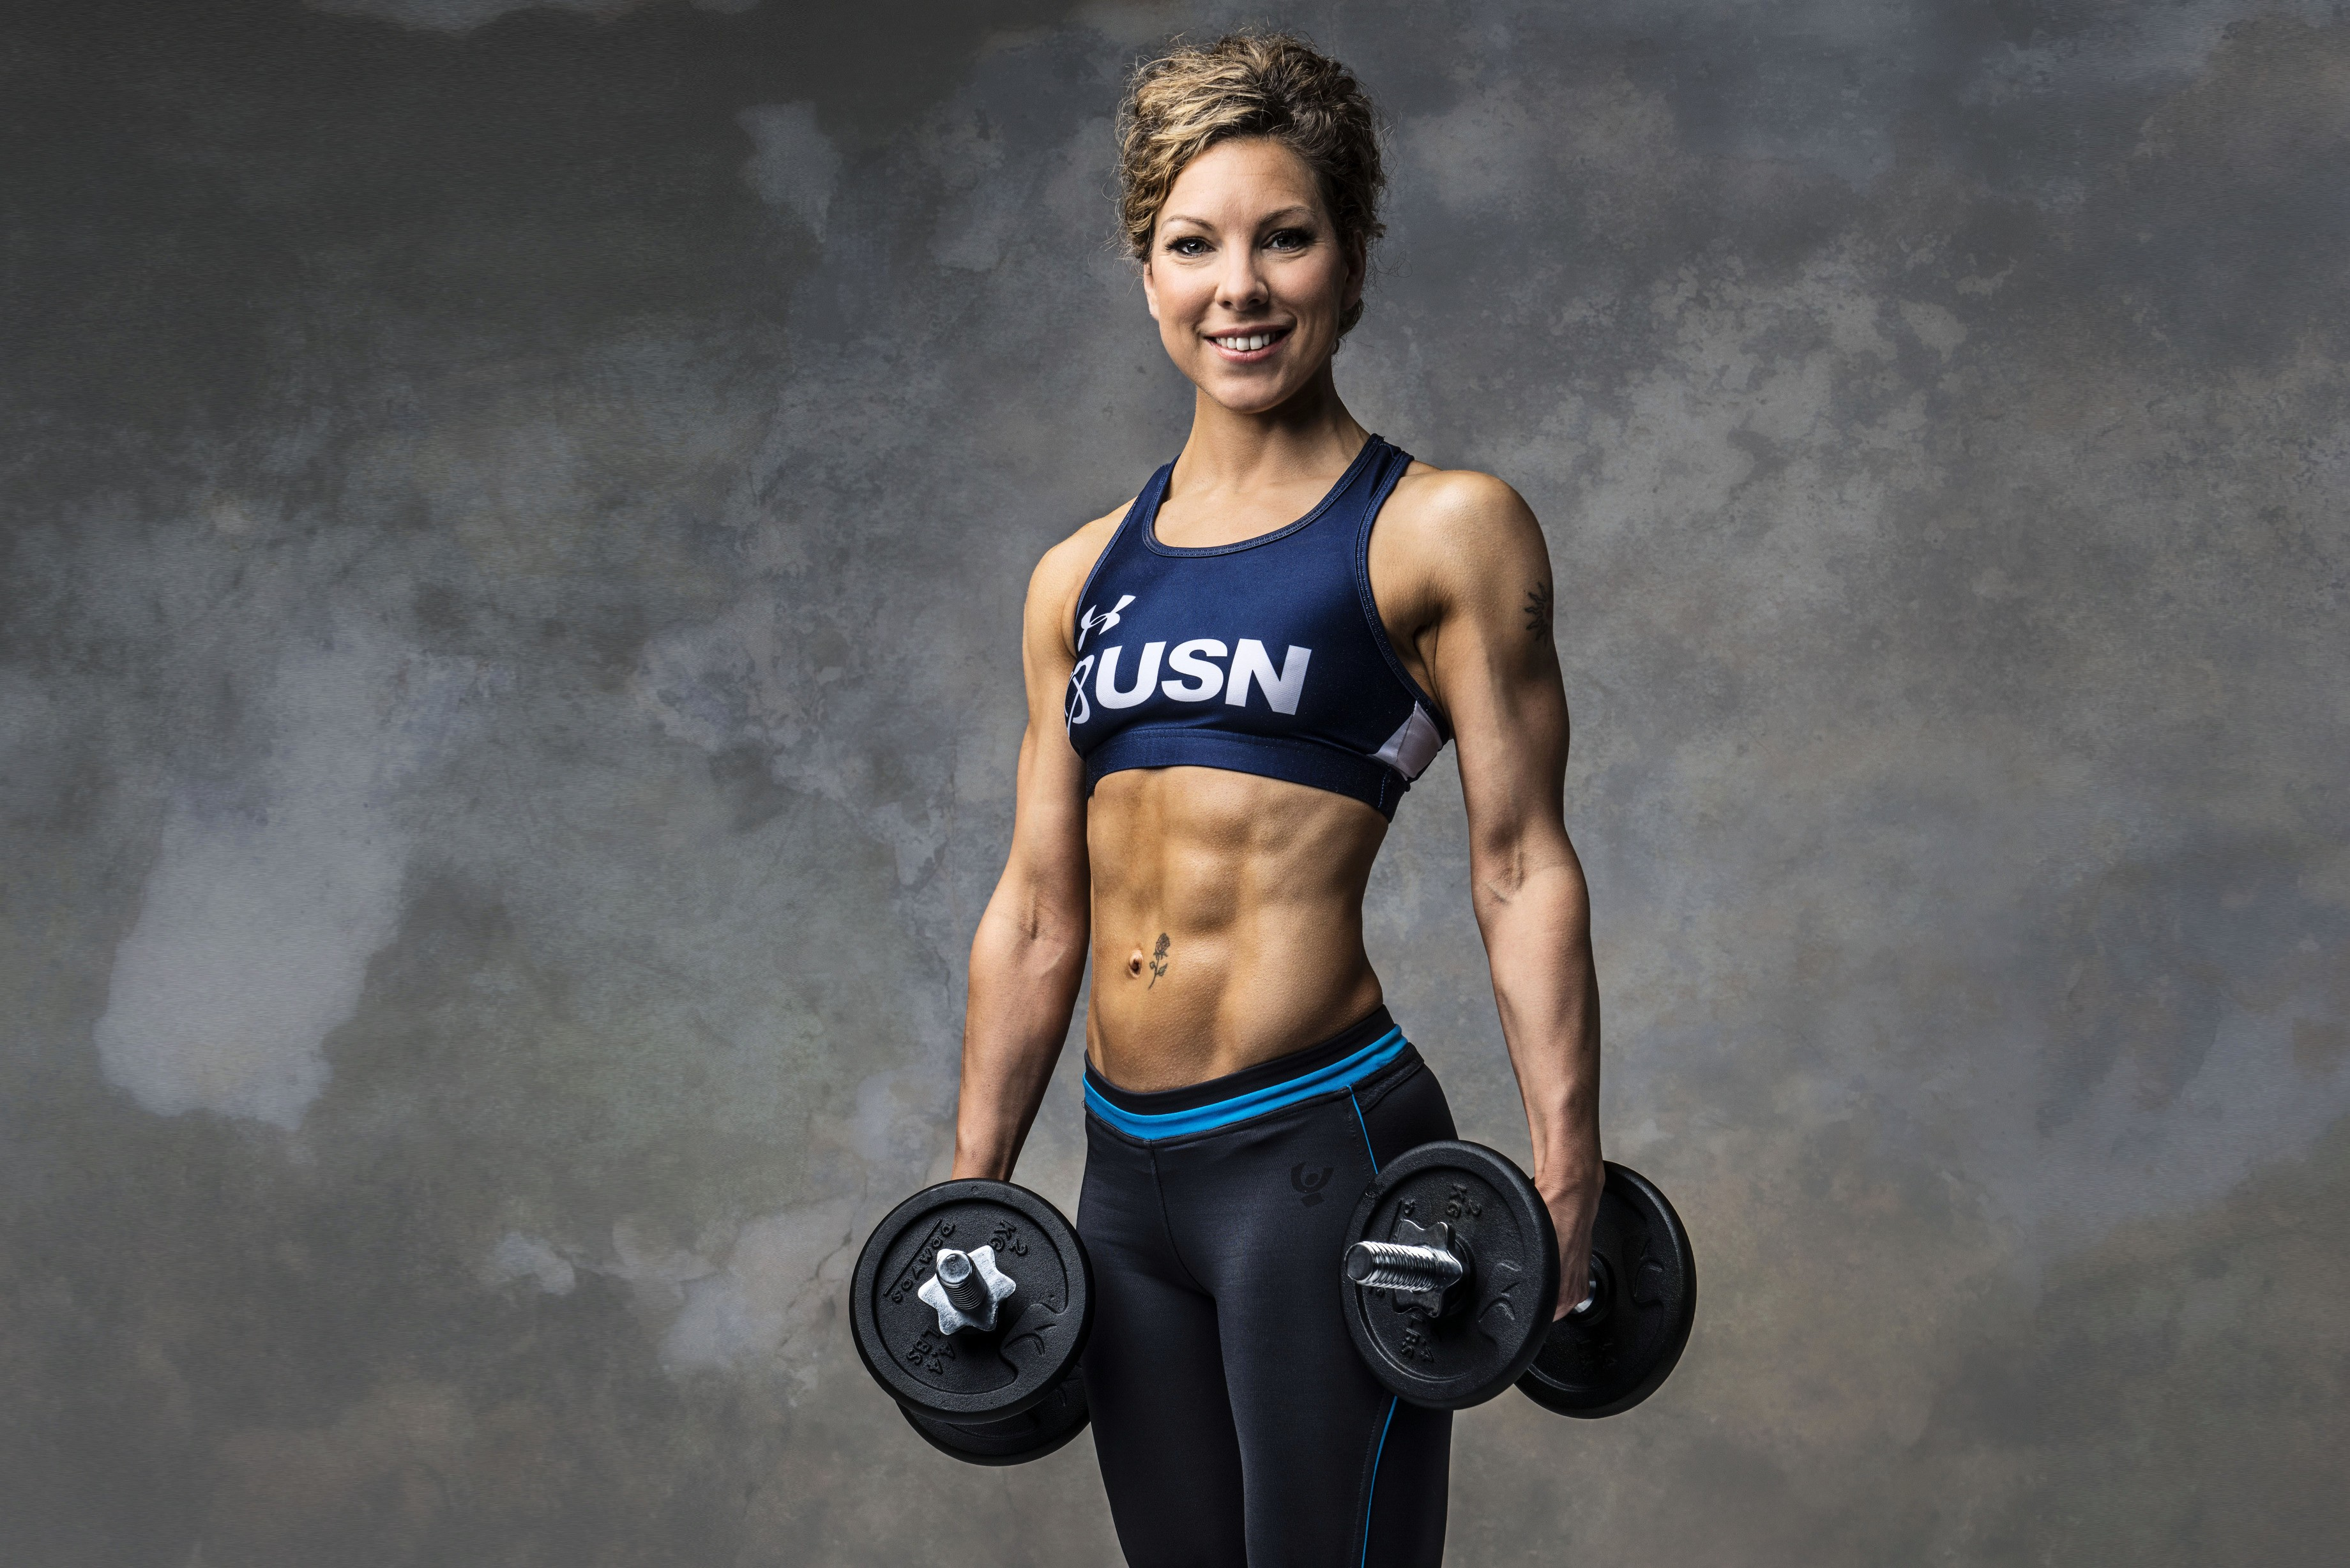 Download 3680x2456 Claire Boyle Midwife Breastfeeding Women Fitness Weightlifting Smiling Gym Wallpapers